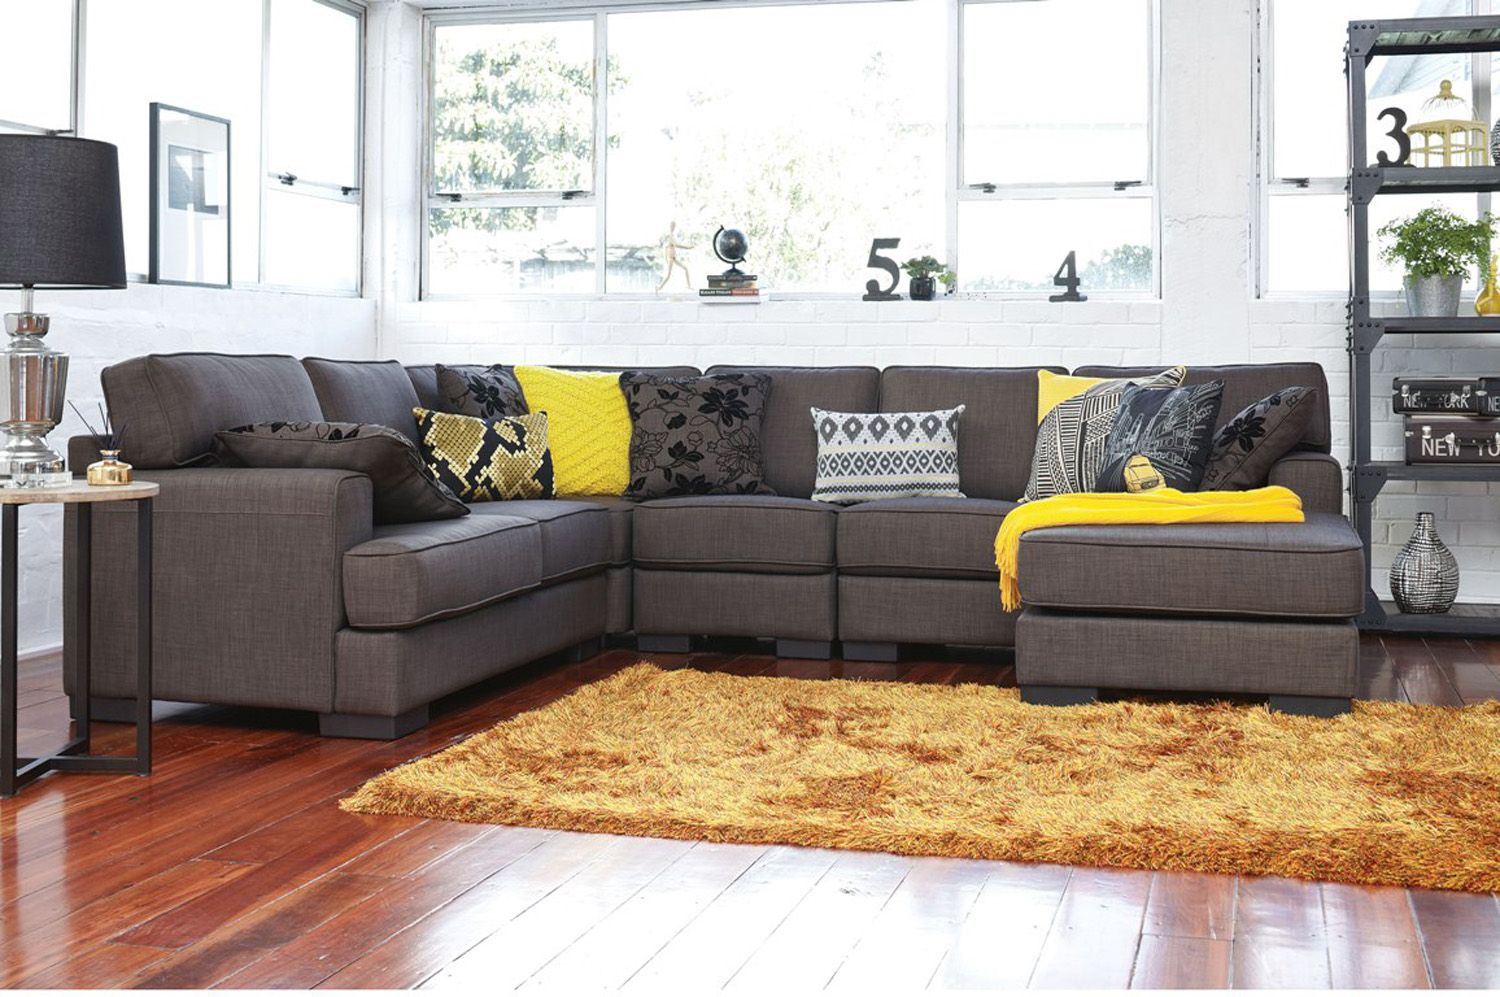 Harvey Norman - Slate 6 Seat Corner Chaise Lounge- this would be perfect! : harvey norman chaise - Sectionals, Sofas & Couches